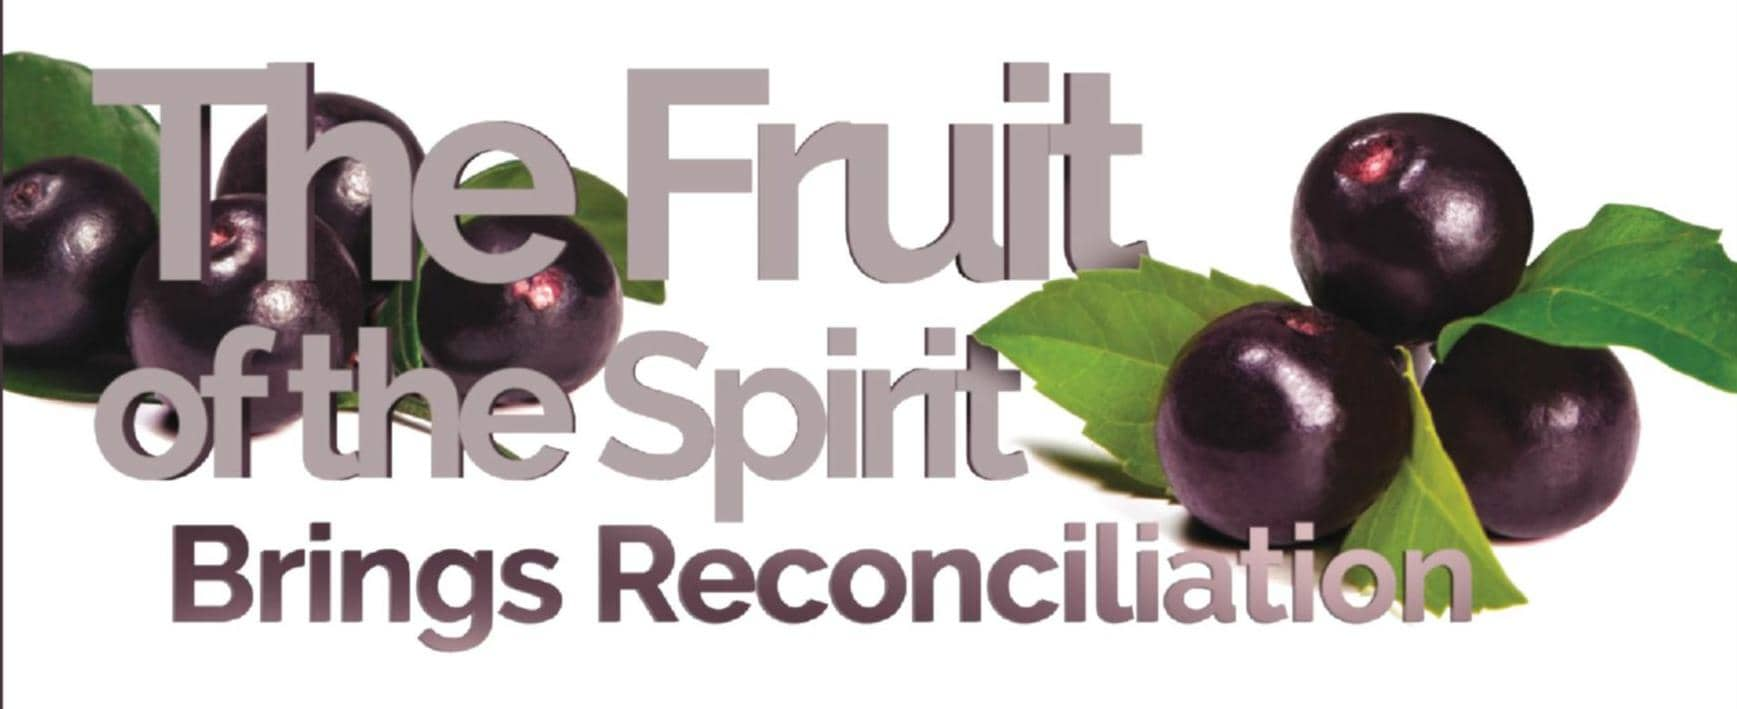 The Fruit of the Spirit Brings Reconciliation